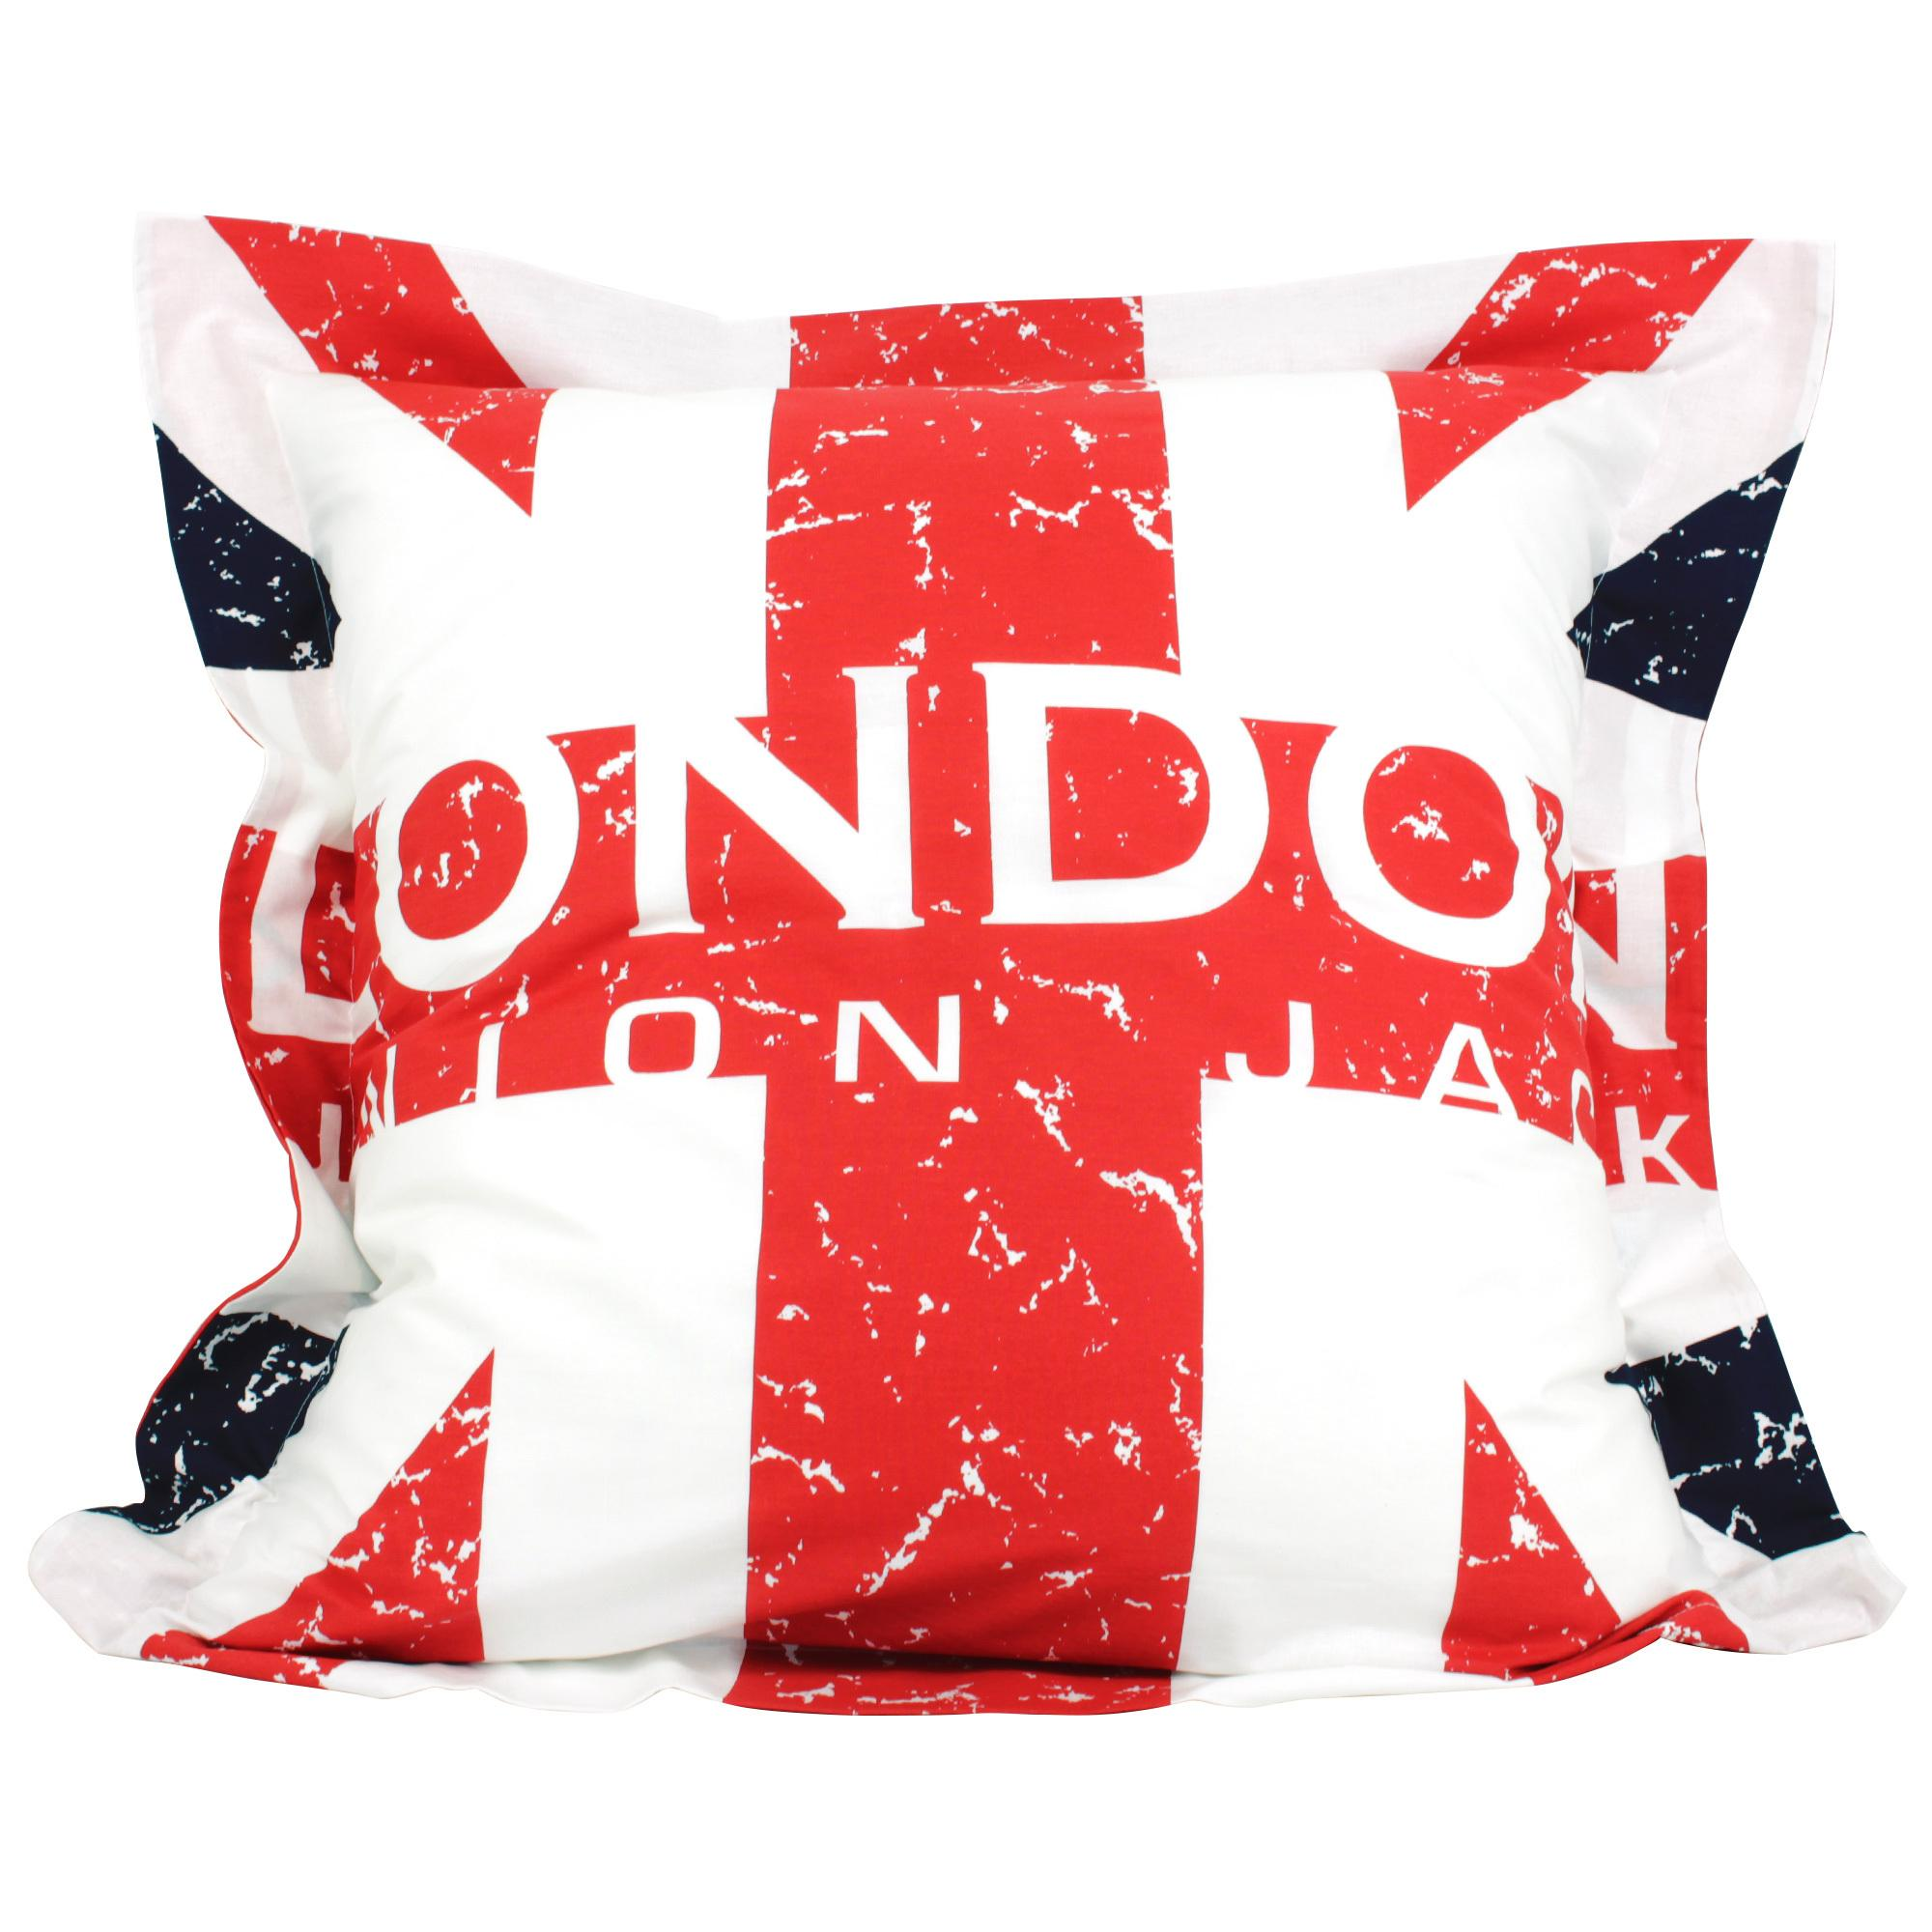 parure de lit 260x240 cm london union jack linnea vente. Black Bedroom Furniture Sets. Home Design Ideas